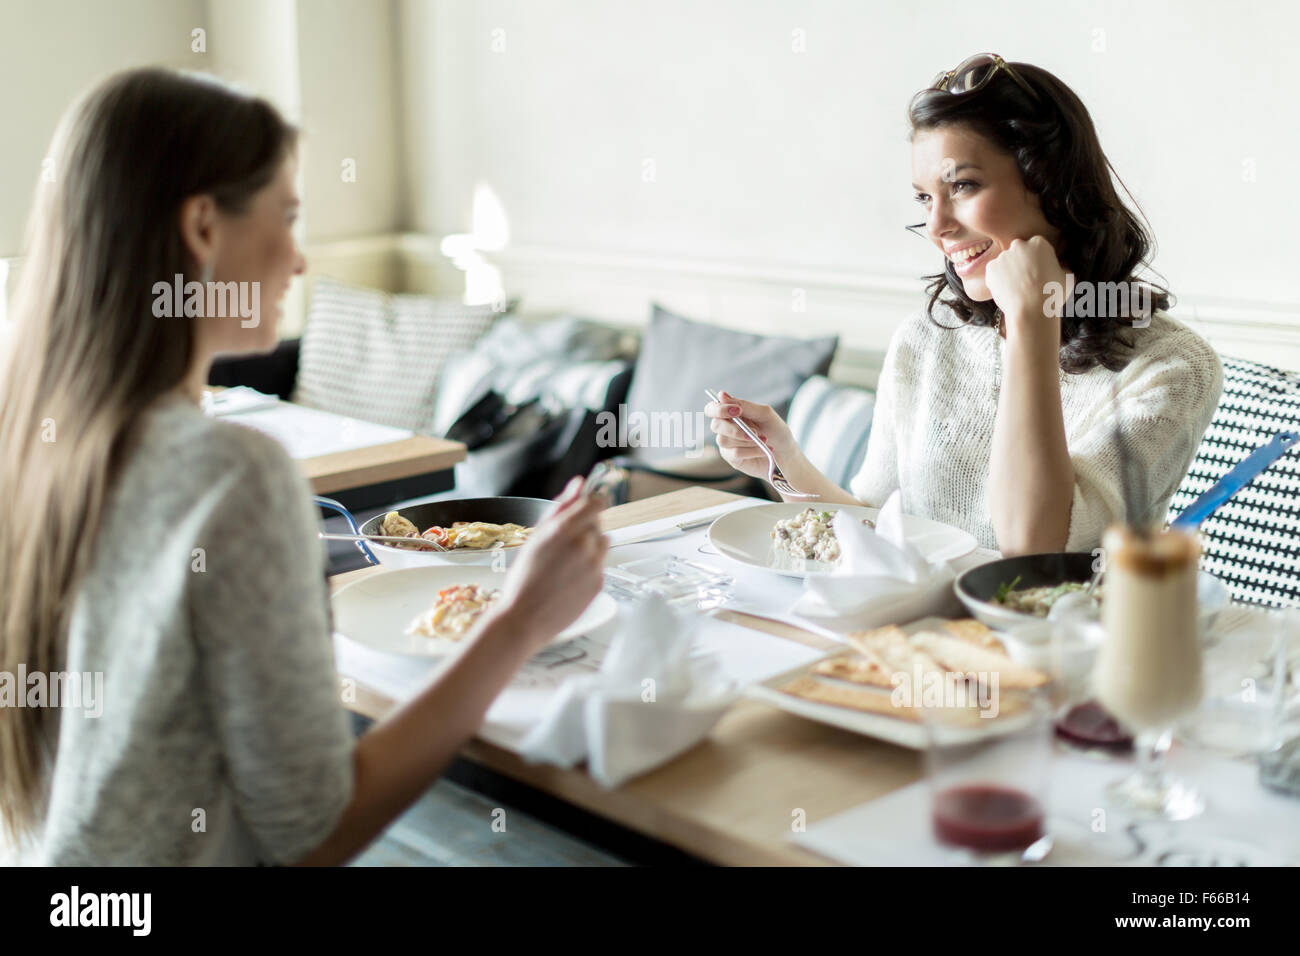 Two beautiful young women eating in a restaurant while having a conversation - Stock Image